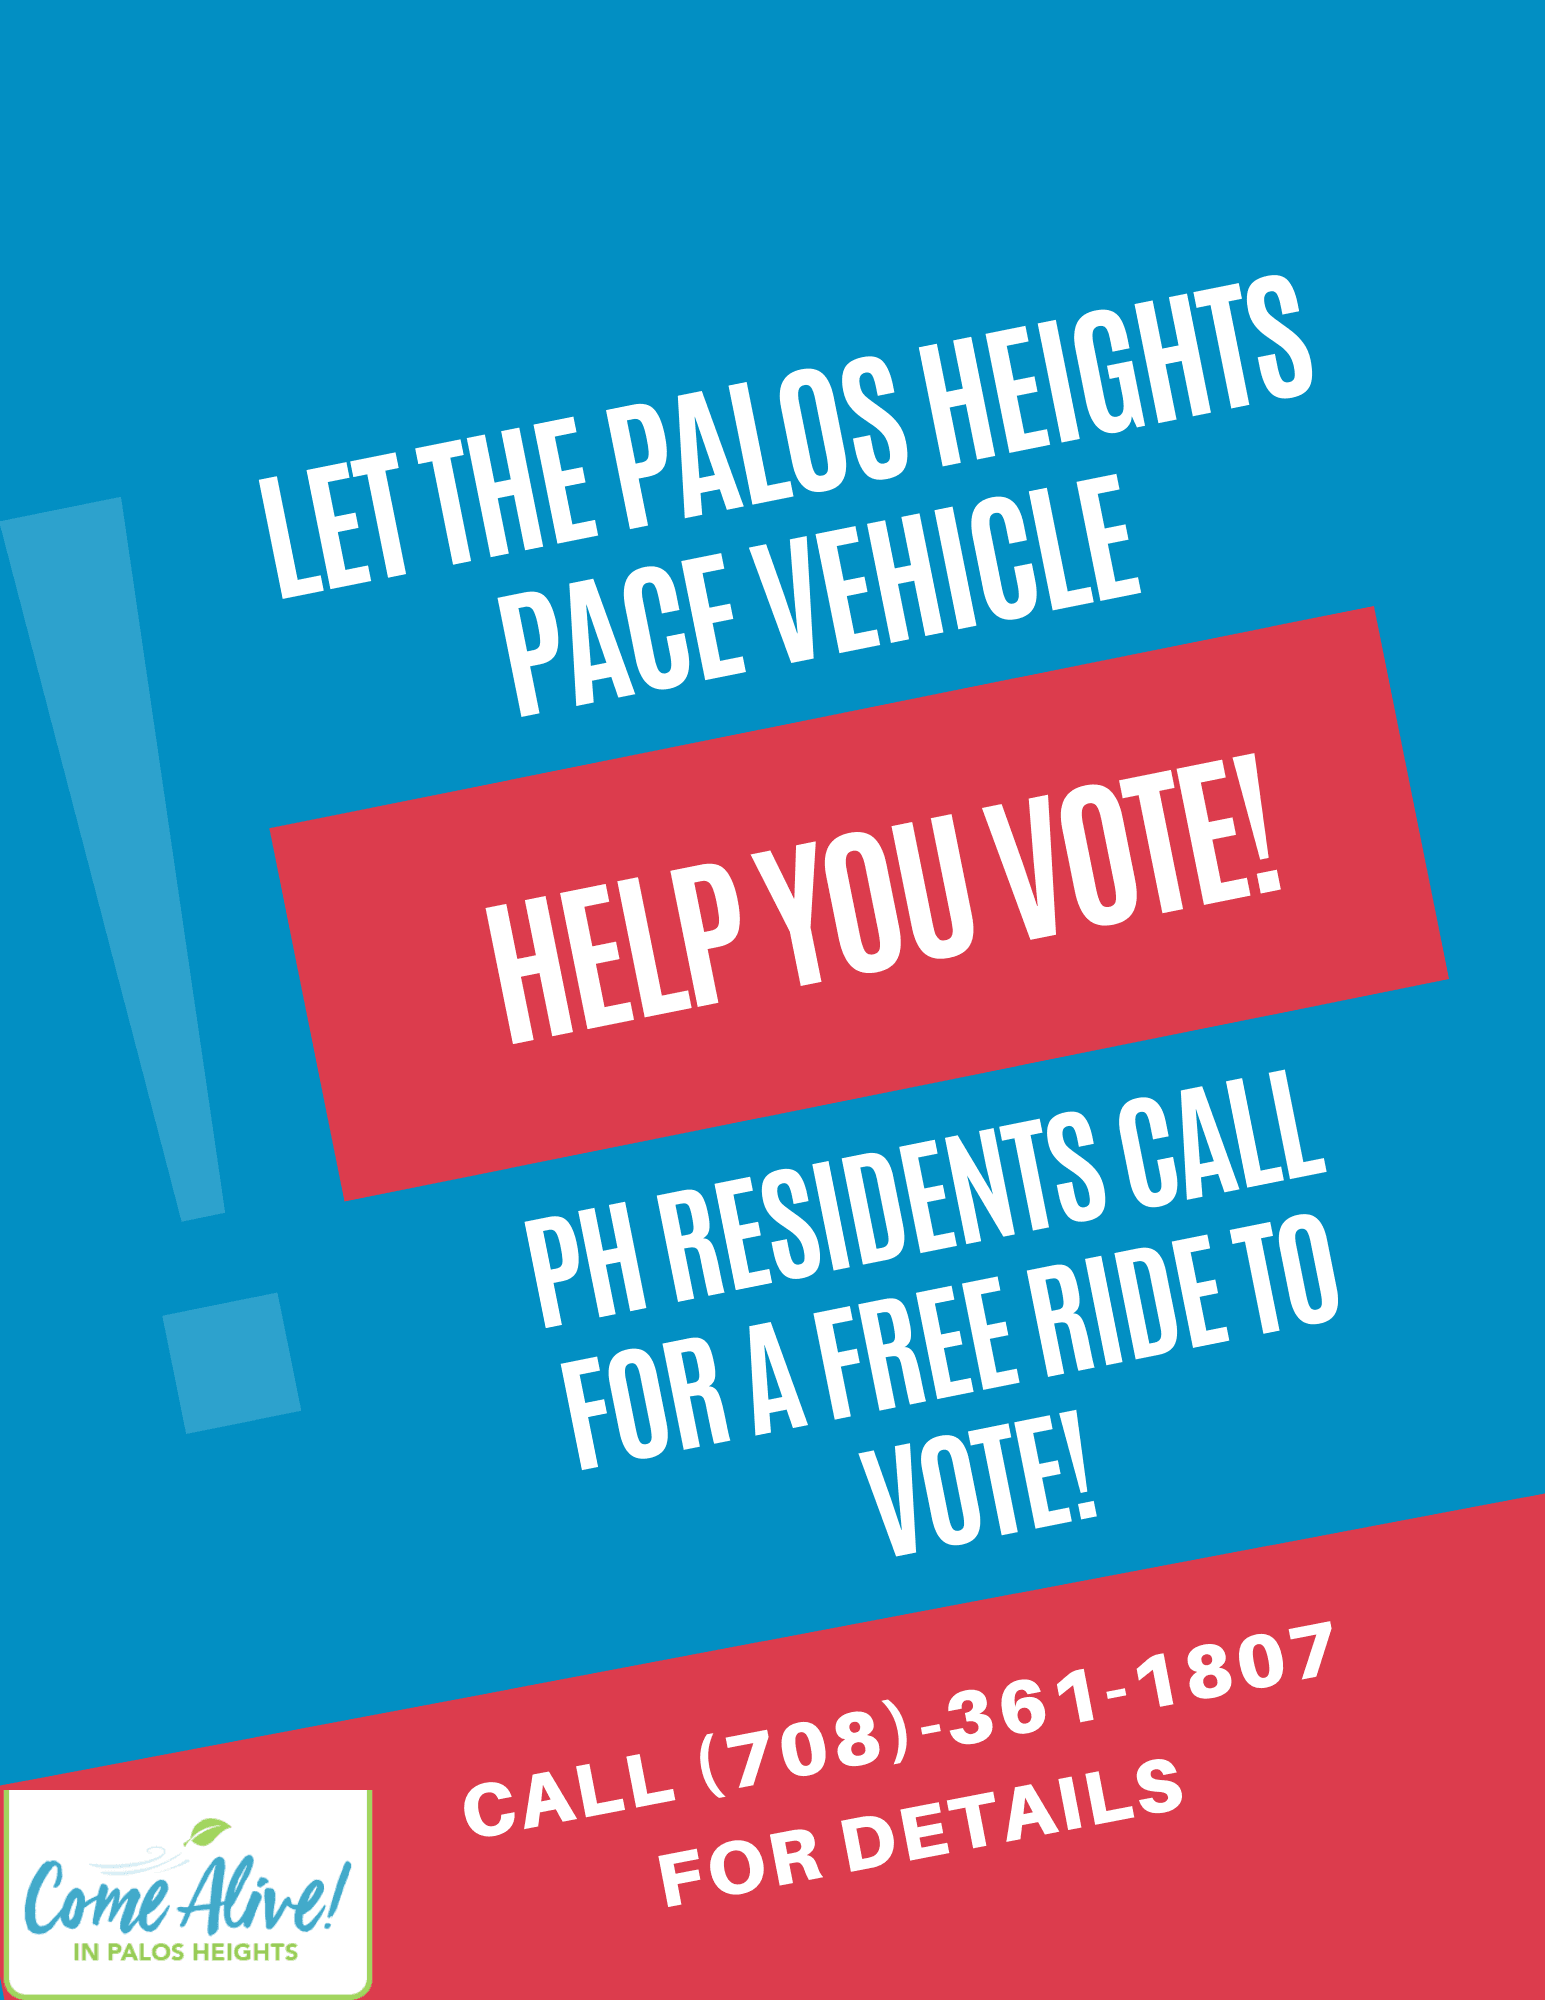 LET THE PALOS HEIGHTS PACE VEHICLE